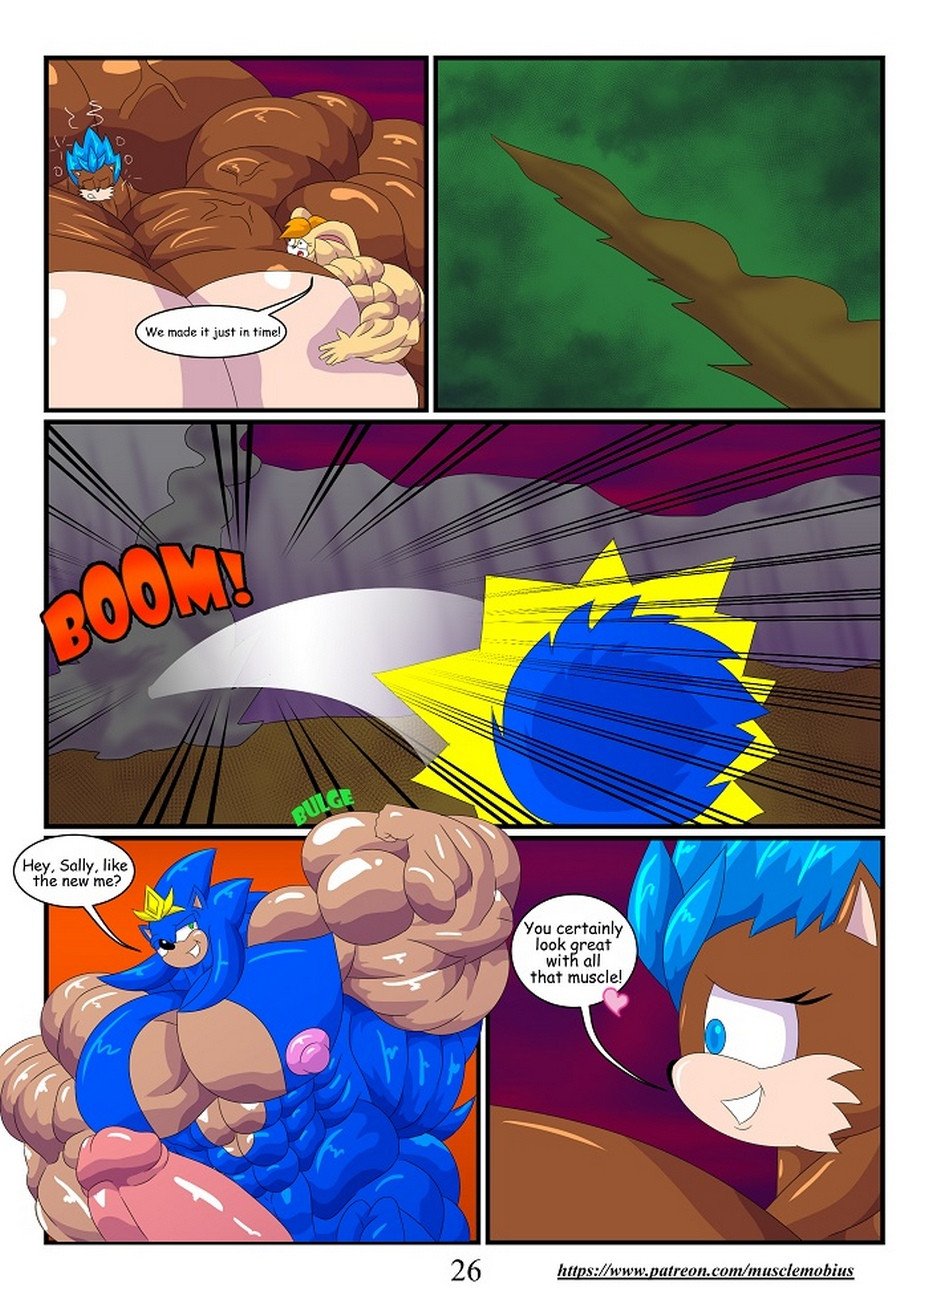 Muscle-Mobius-4 27 free sex comic